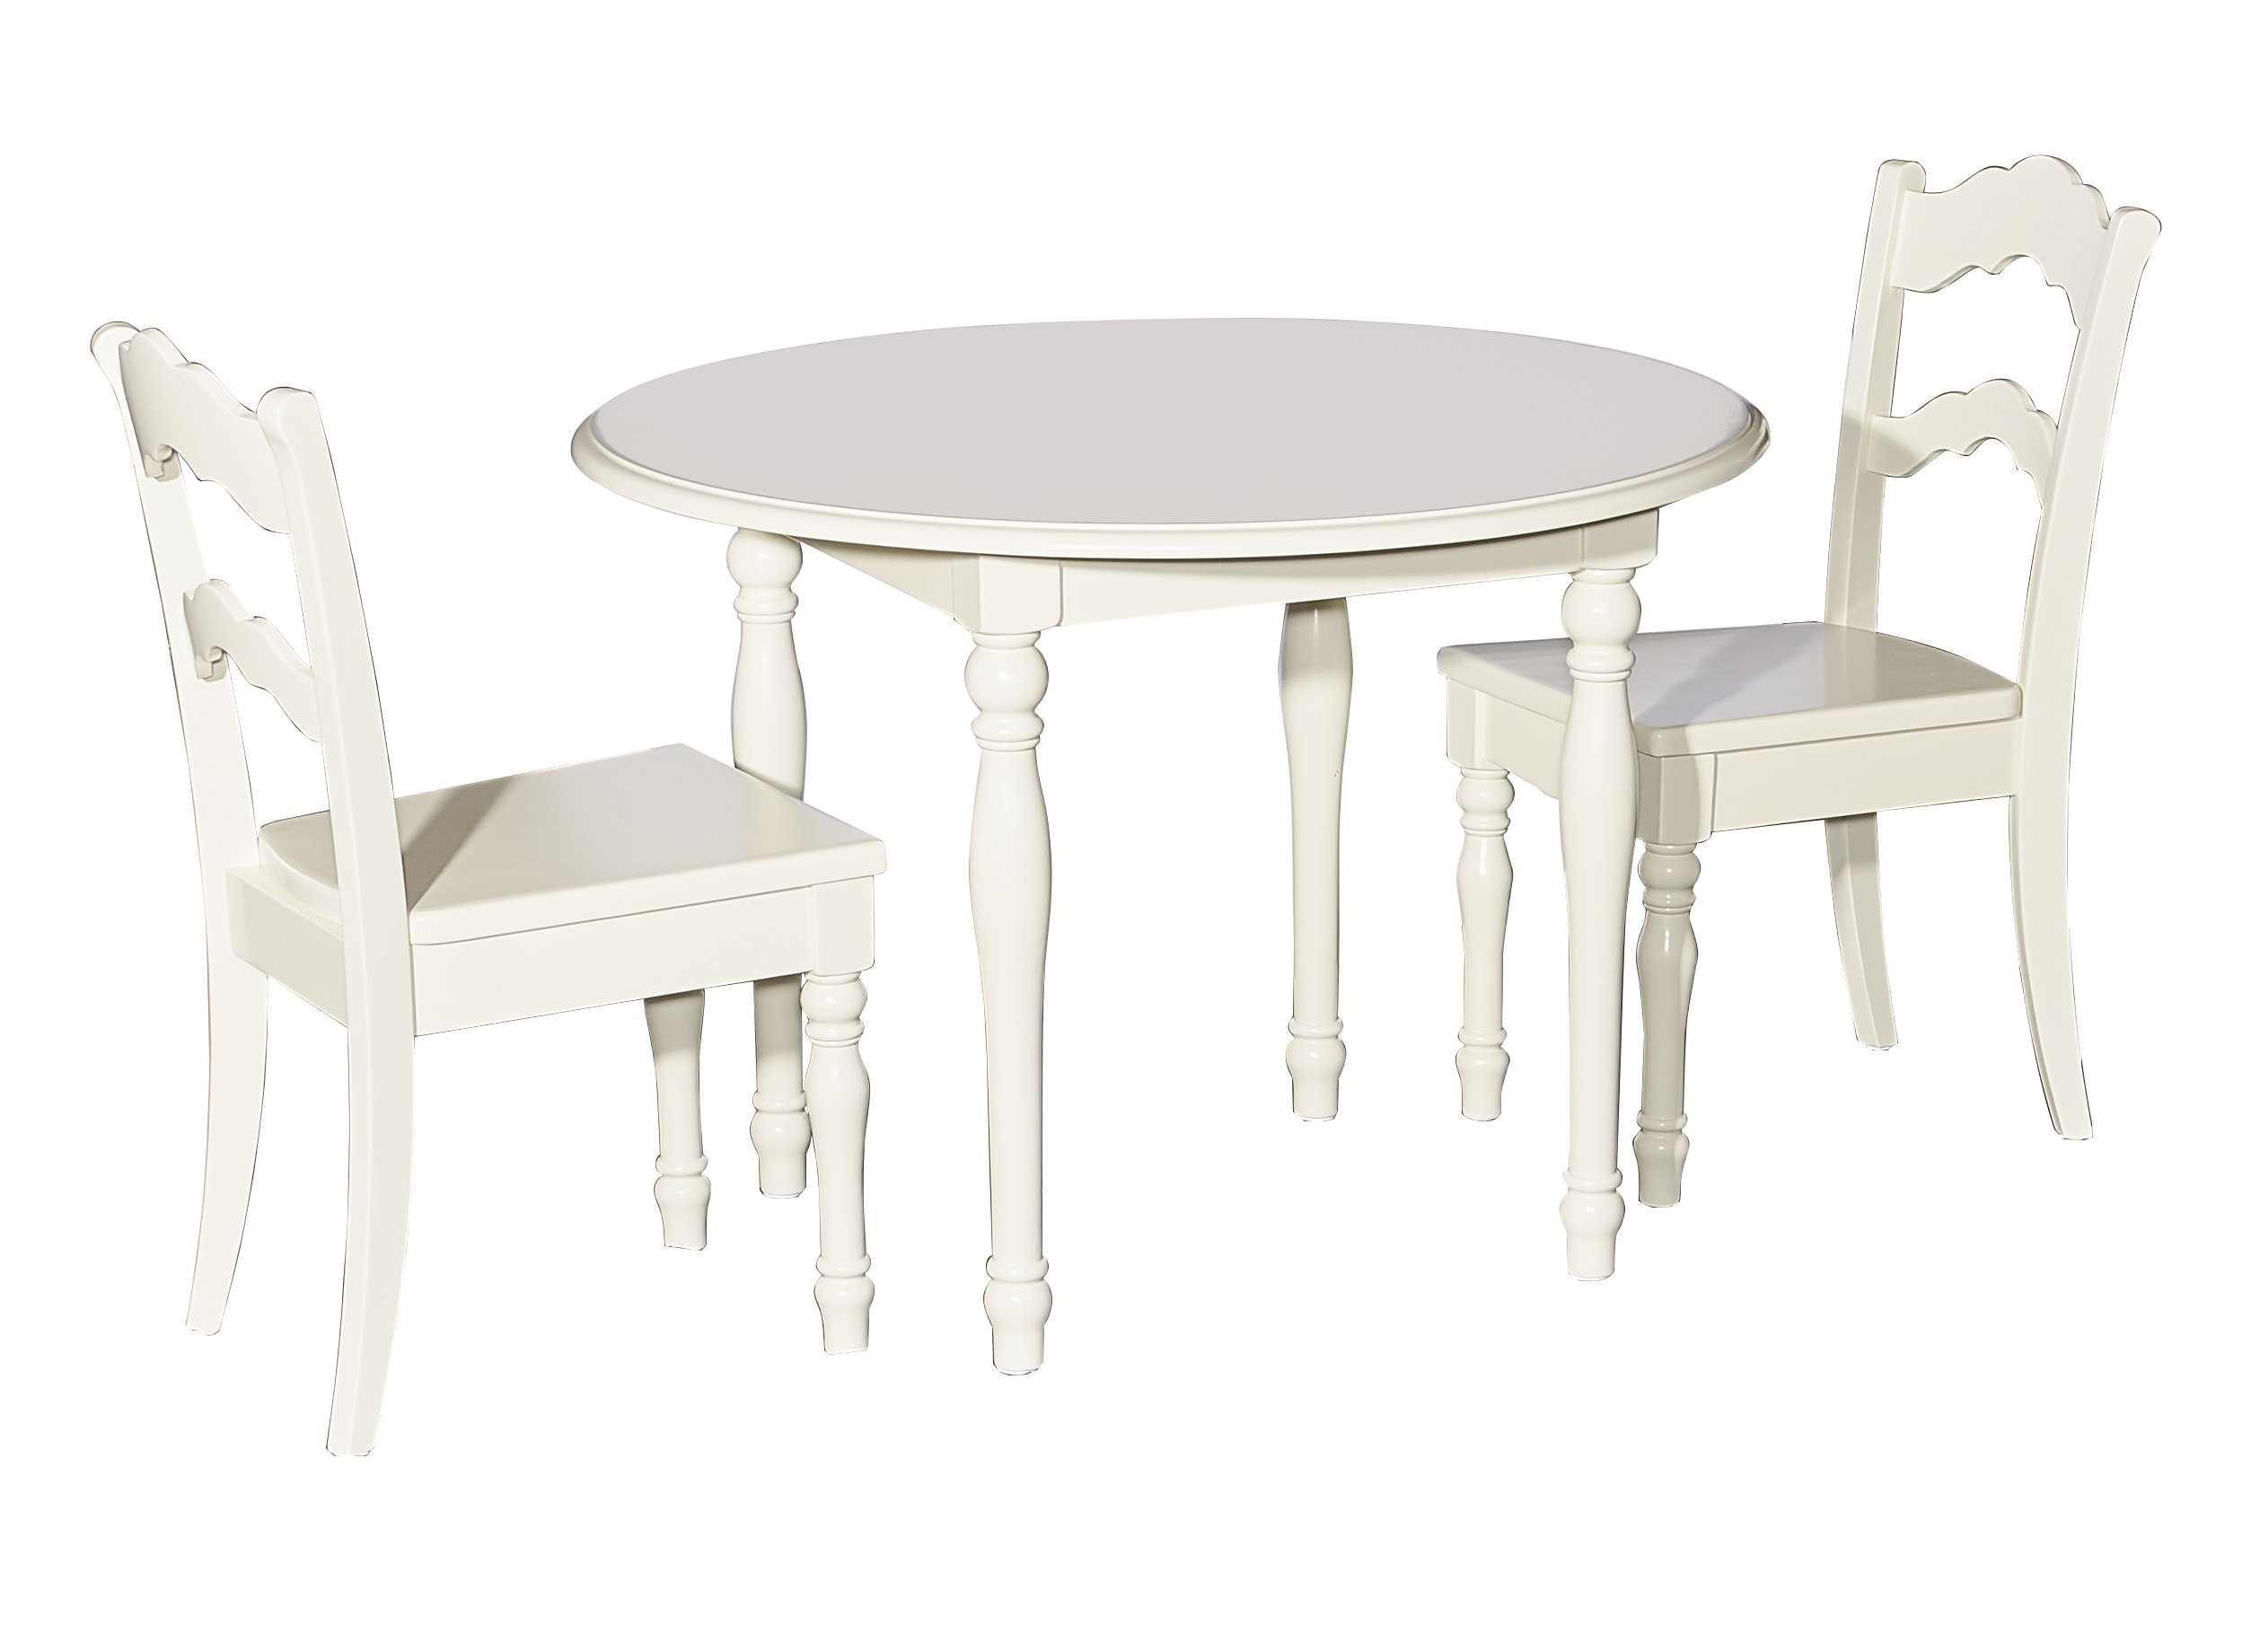 Powell Furniture Table and 2 Chairs, Cream Youth, by Powell Furniture